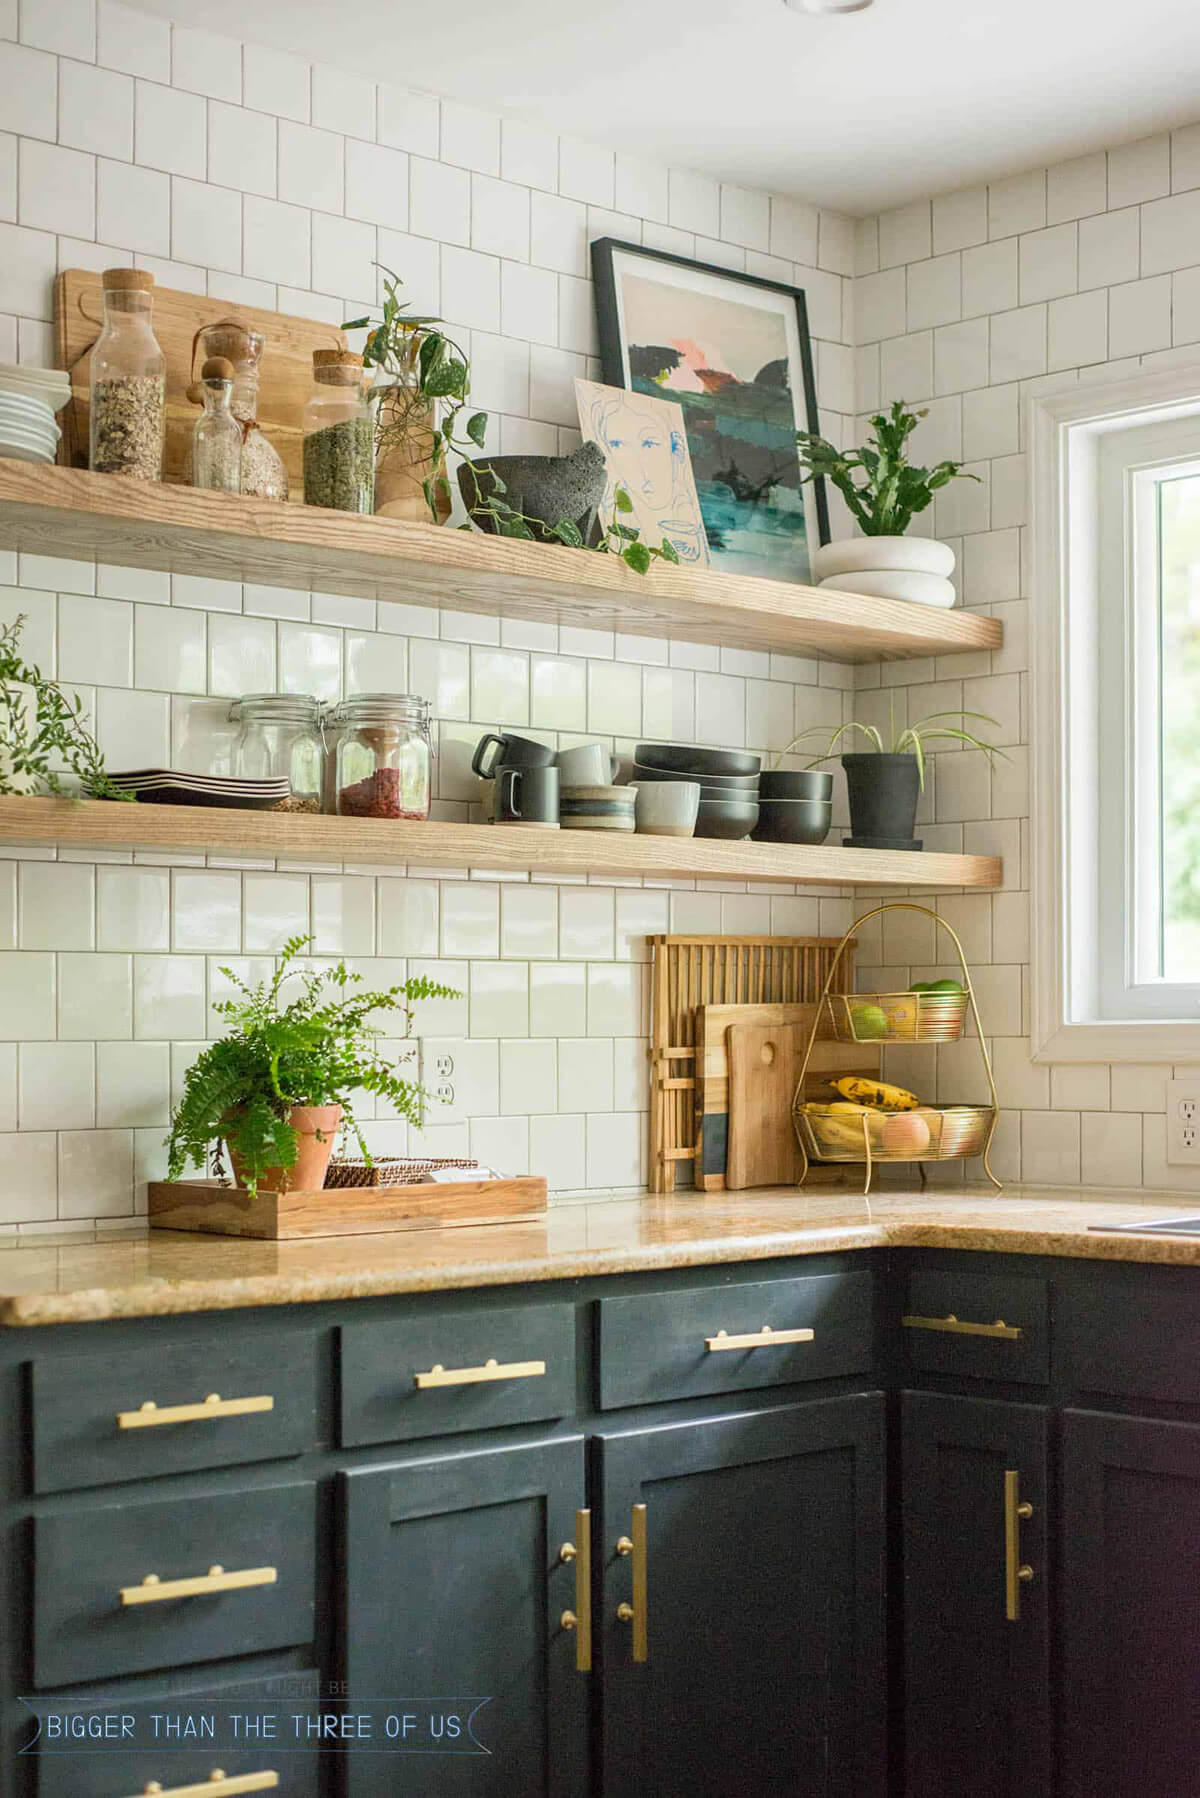 18 Best Open Kitchen Shelf Ideas and Designs for 2019 Ideas For Open Kitchen Cupboard on pantry ideas, galley kitchen ideas, kitchen stand ideas, kitchen rug ideas, kitchen fruit ideas, kitchen countertop ideas, kitchen plate ideas, kitchen backsplash ideas, kitchen fridge ideas, kitchen design, kitchen library ideas, kitchen cooking ideas, kitchen decorating ideas, kitchen cabinets, kitchen dining set ideas, l-shaped kitchen plan ideas, kitchen silver ideas, kitchen wood ideas, kitchen couch ideas, kitchen crate ideas,